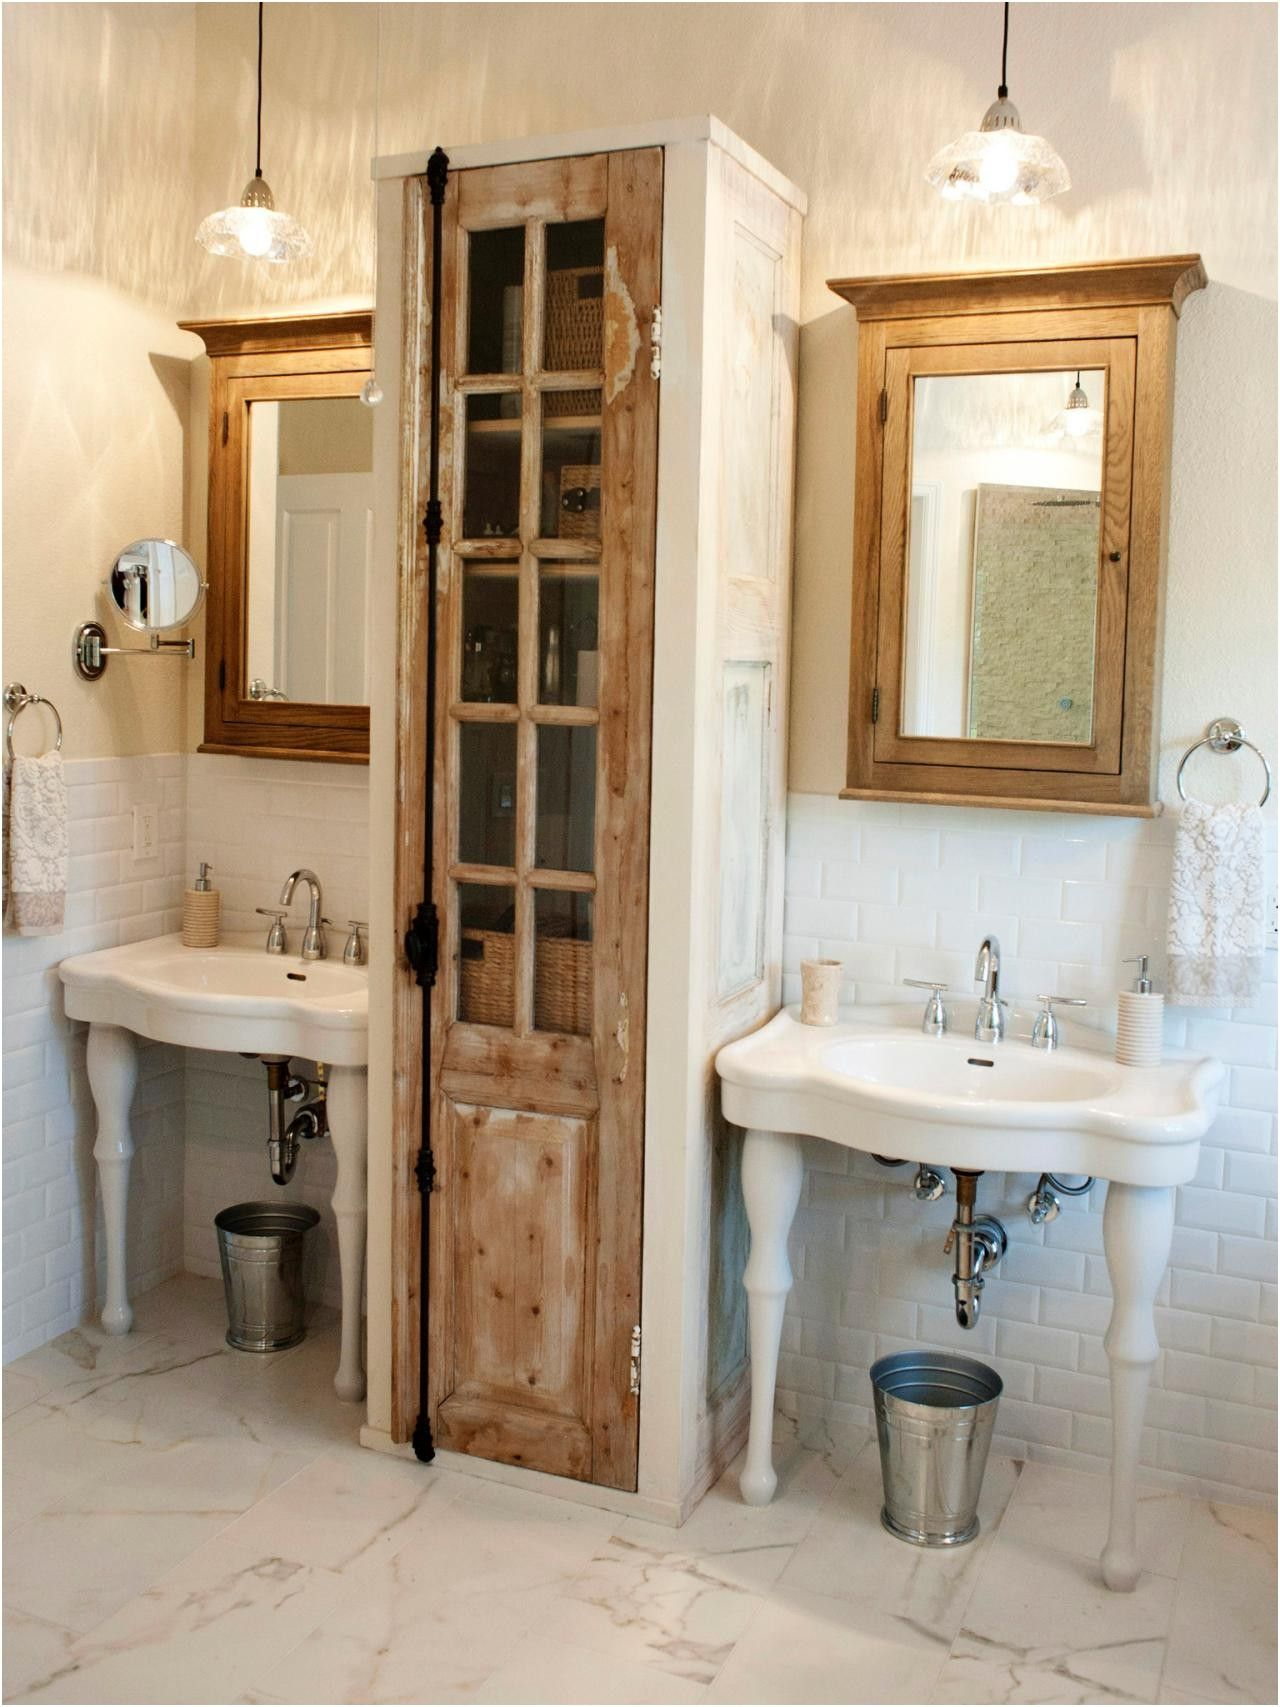 Tall Bathroom Cabinets from Vintage Bathroom Cabinets For Storage - Tall Bathroom Cabinets From Vintage Bathroom Cabinets For Storage